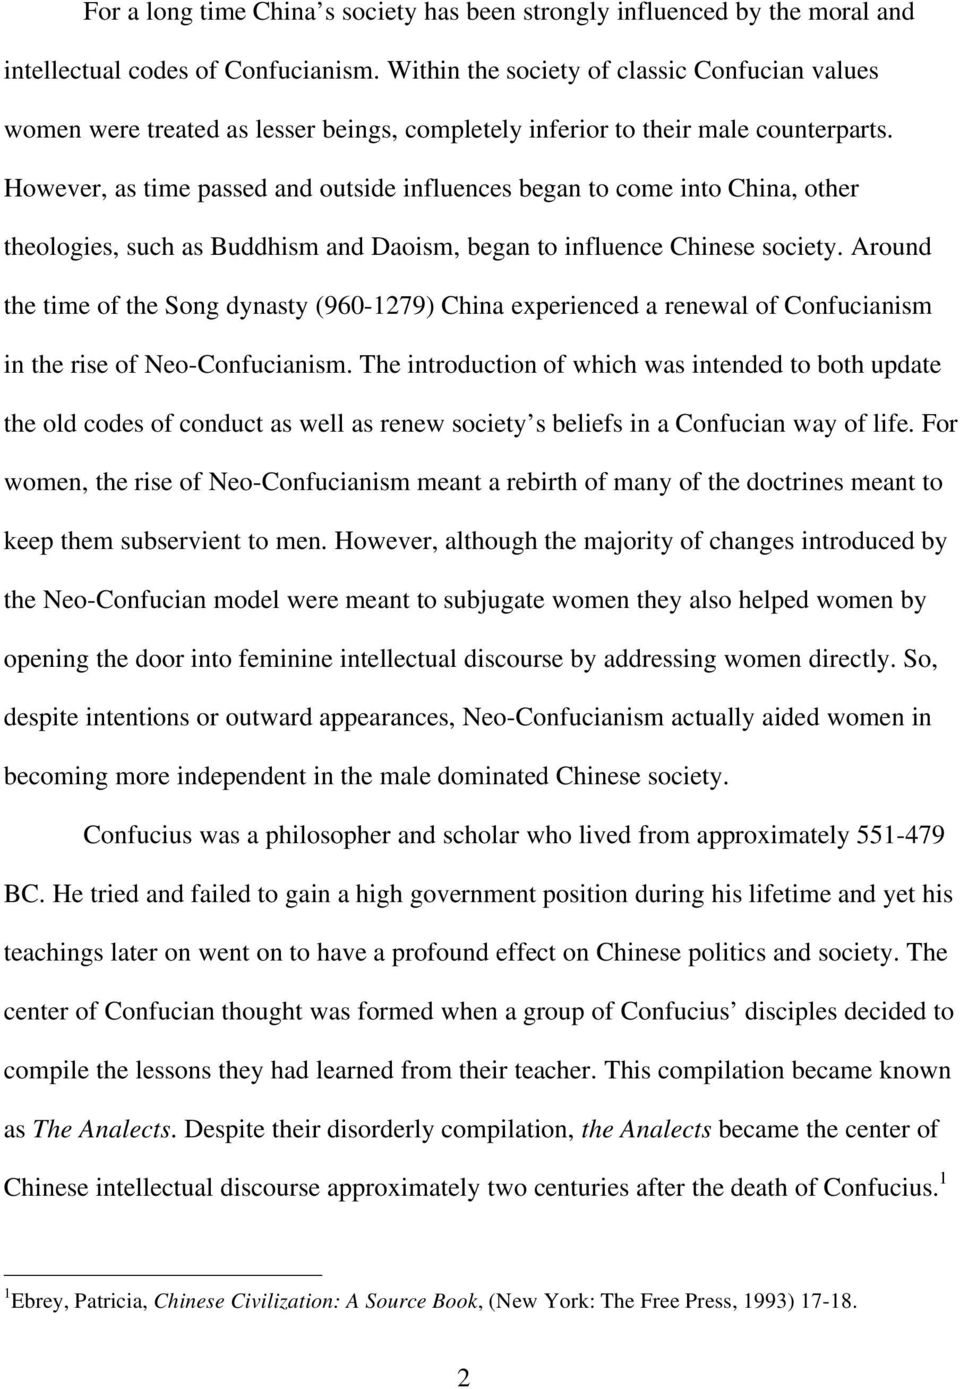 However, as time passed and outside influences began to come into China, other theologies, such as Buddhism and Daoism, began to influence Chinese society.